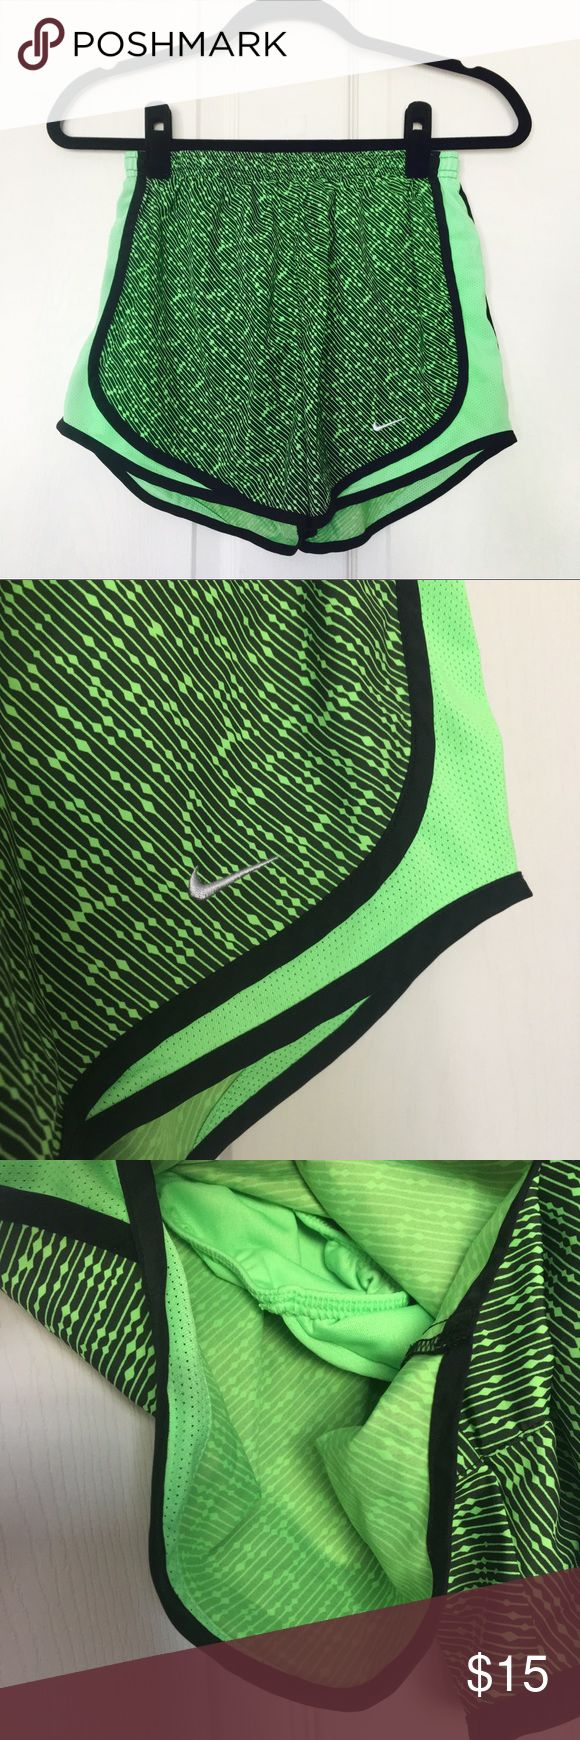 Nike Dri Fit Tempo Geometric Neon Green Shorts In excellent condition. No snags, tears or stains. Dri fit fabric. Elastic waistband with black waist ties. Built in undergarment. Perfect for running, other sports and outdoor activity. Even great for everyday wear!   MEASUREMENTS (laying flat) Waist: Waist to hem:   📮USE OFFER FEATURE TO NEGOTIATE 💰BUNDLE TO SAVE 🚫NO TRADES Nike Shorts